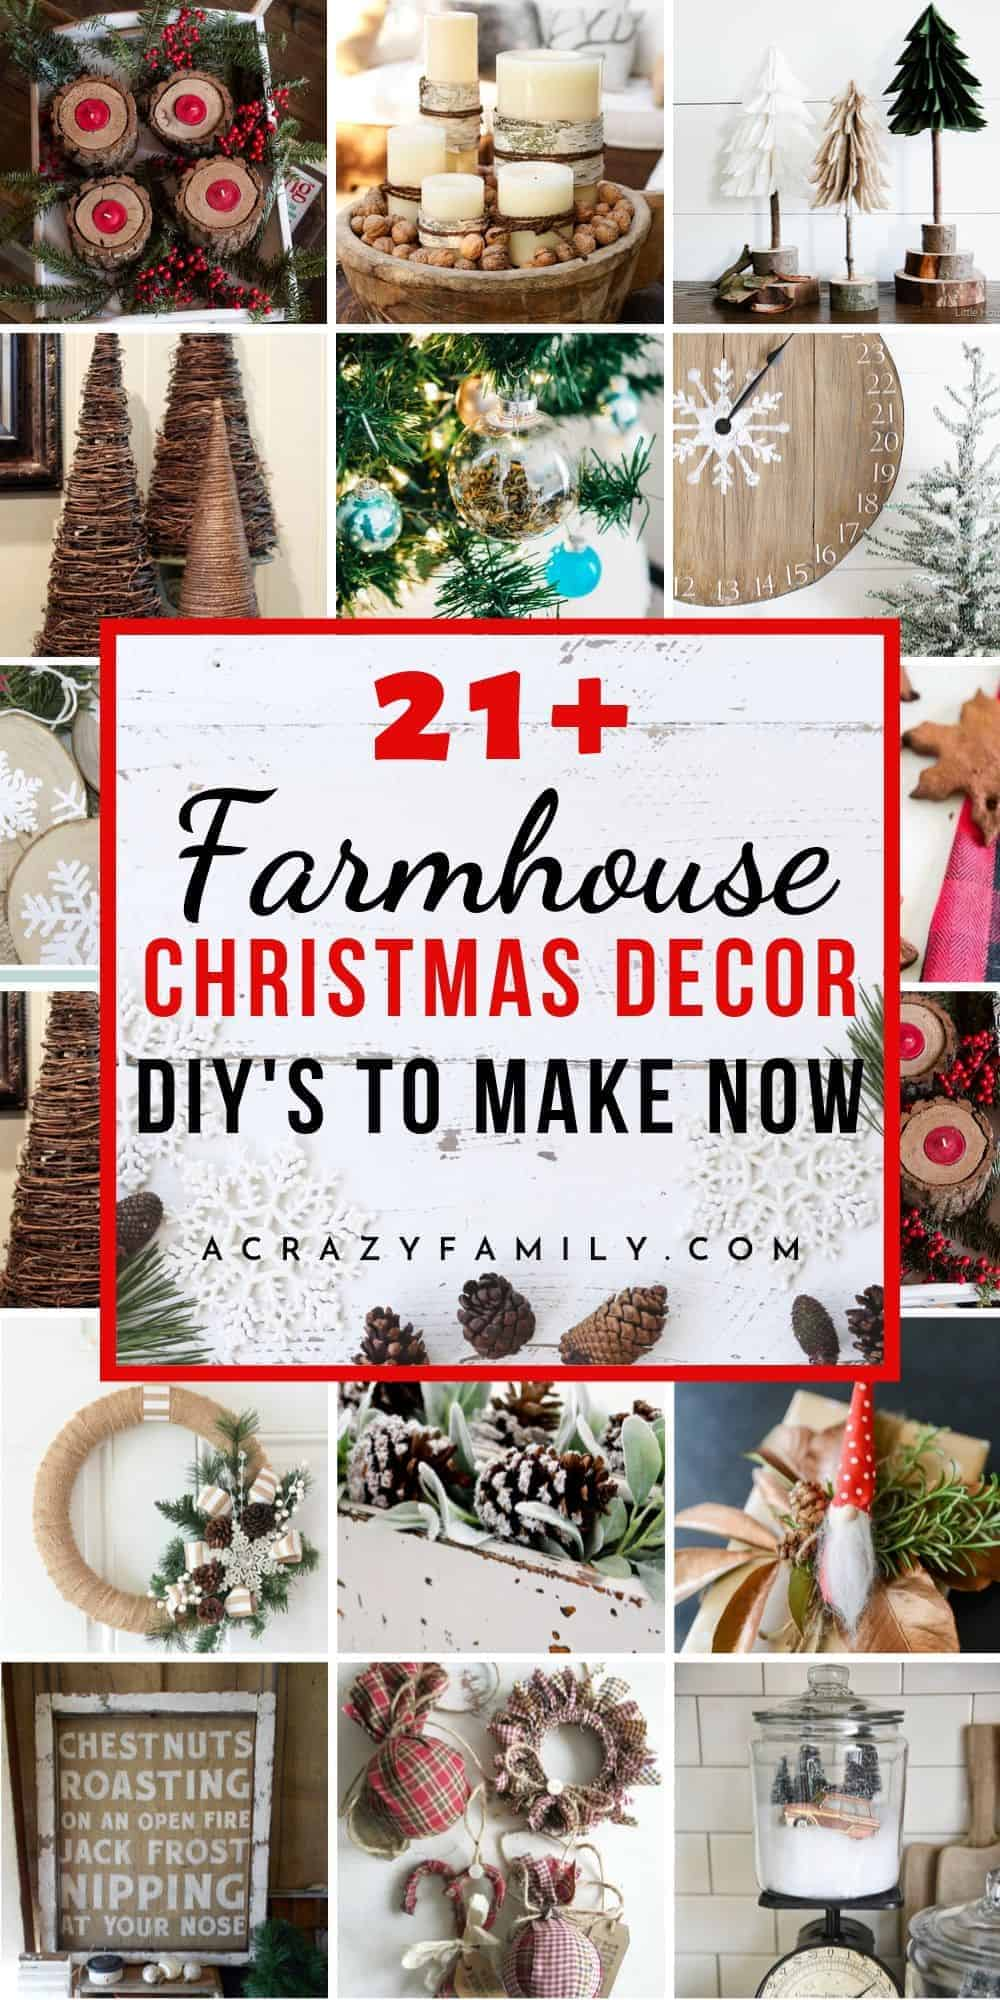 21 Awesome Rustic Farmhouse Christmas Decorations To Diy